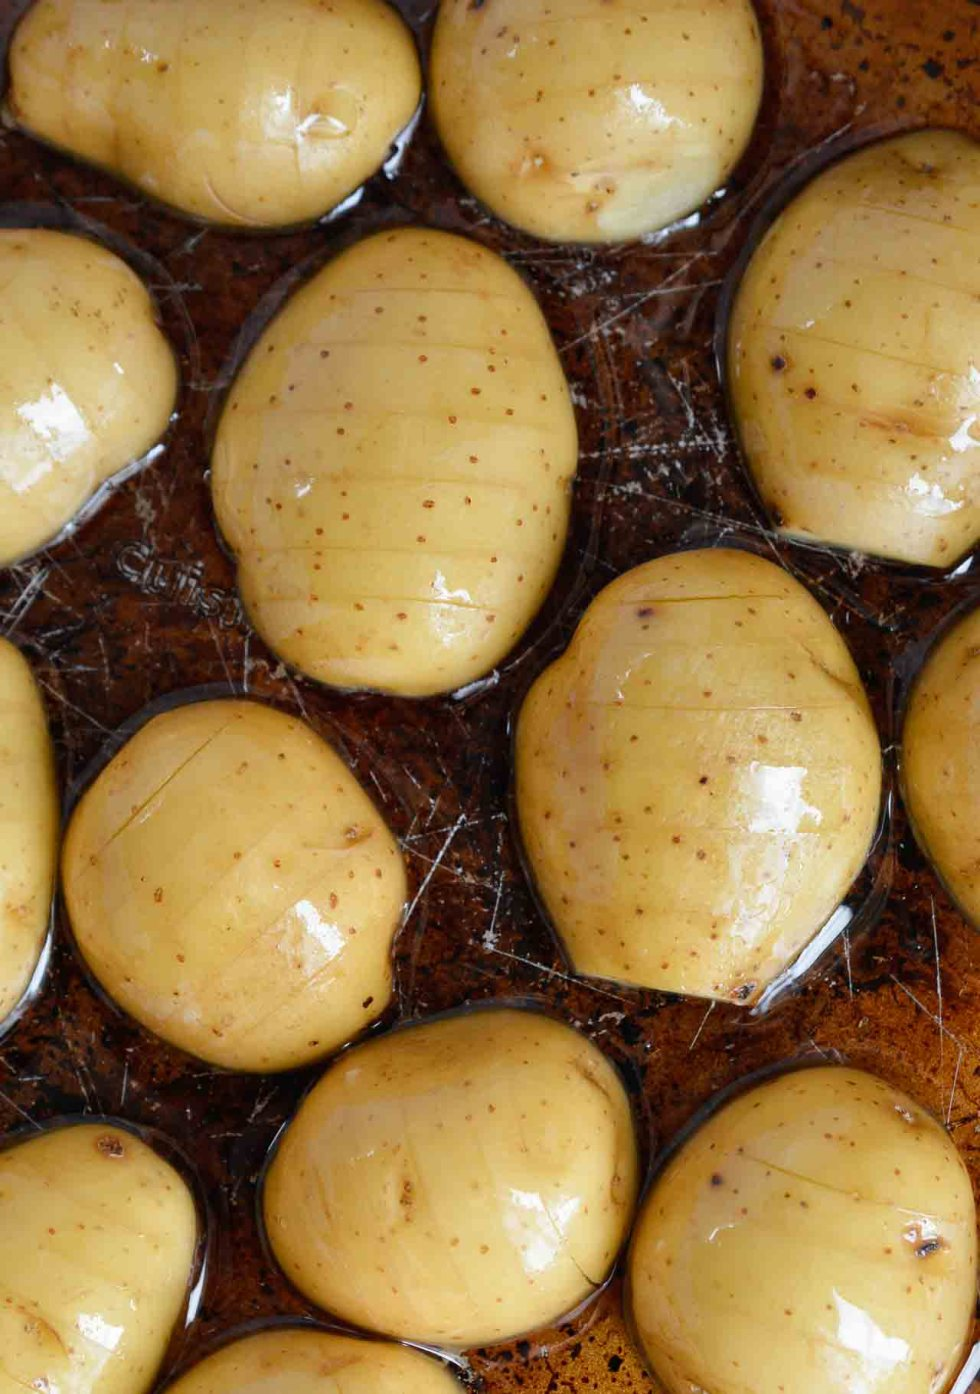 These Simple Oven Roasted Potatoes are absolute potato perfection! Golden brown and crispy on one side, creamy and dreamy on the other. This recipe is great as a side dish for just about any meal! This recipe is Whole30 compliant, Vegan, Gluten Free and Dairy Free. #dairyfreerecipes #whole30recipes